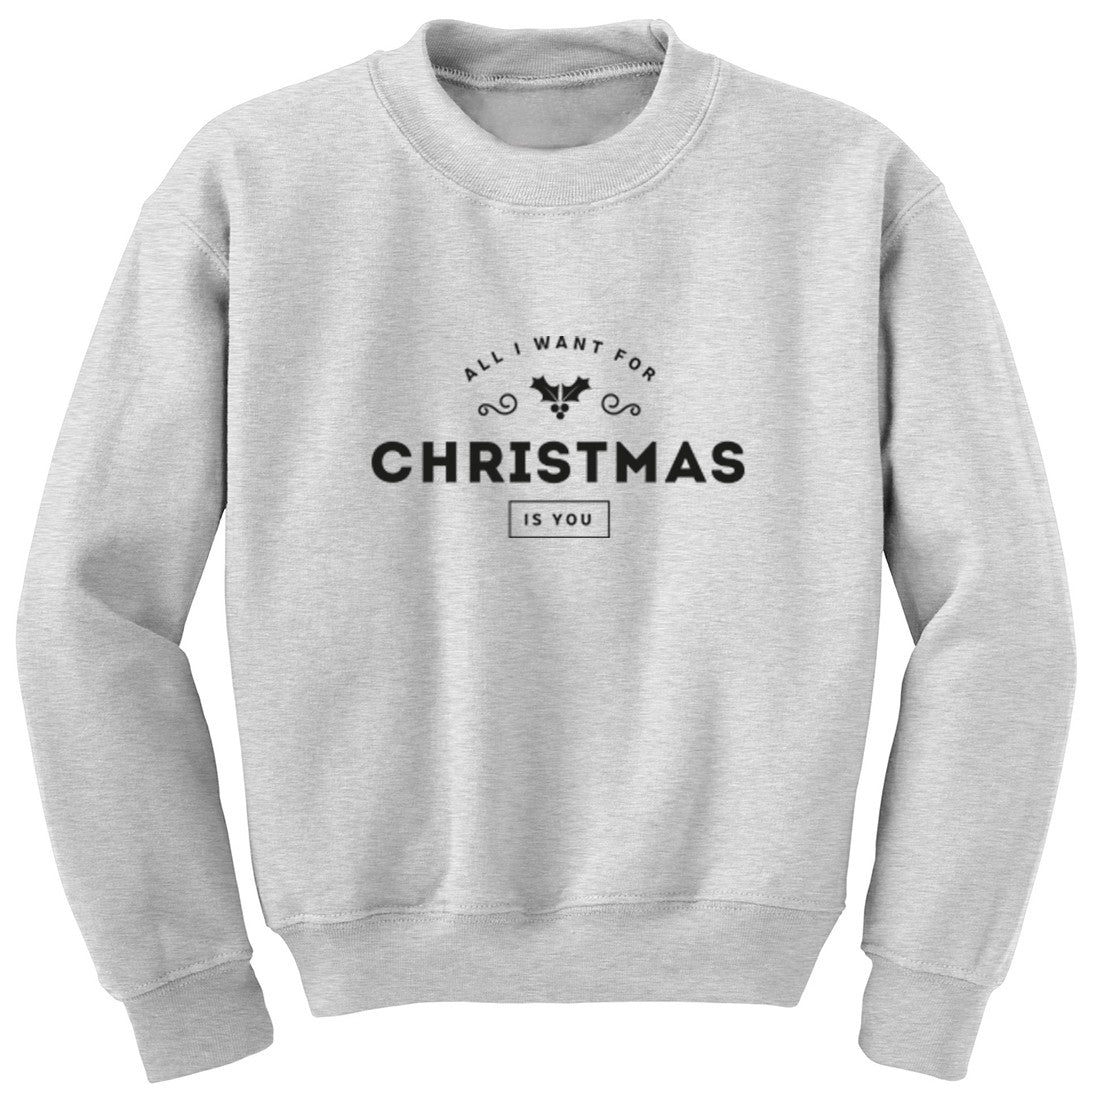 All I Want For Christmas Is You Unisex Jumper K1251